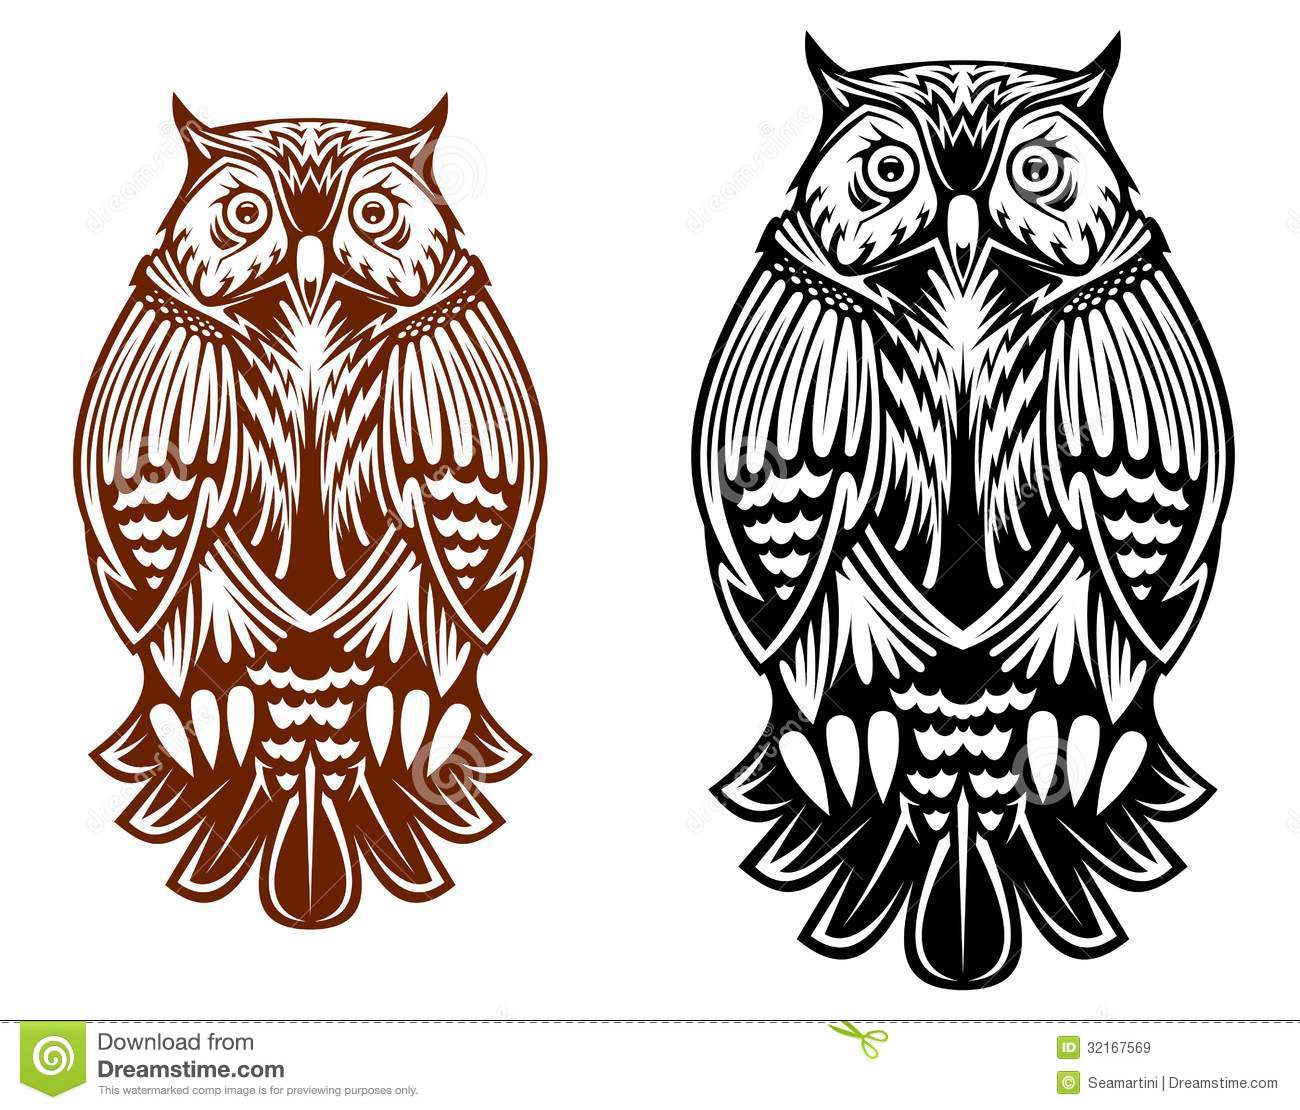 Tattoo Designs White Background: Beautiful Owl Mascot Stock Vector. Illustration Of